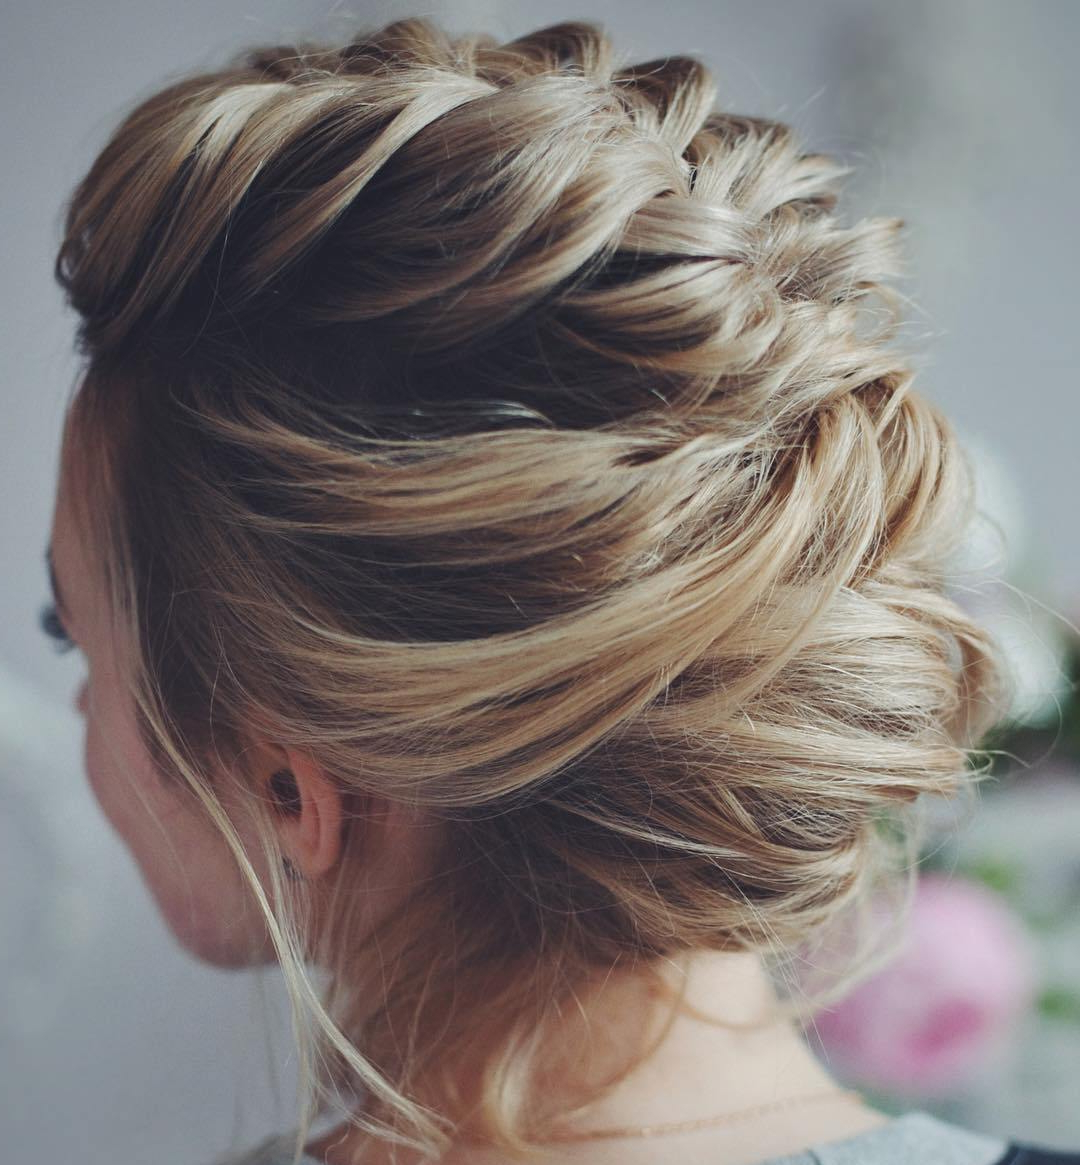 50 Hottest Prom Hairstyles For Short Hair In Current Half Prom Updos With Bangs And Braided Headband (View 4 of 20)